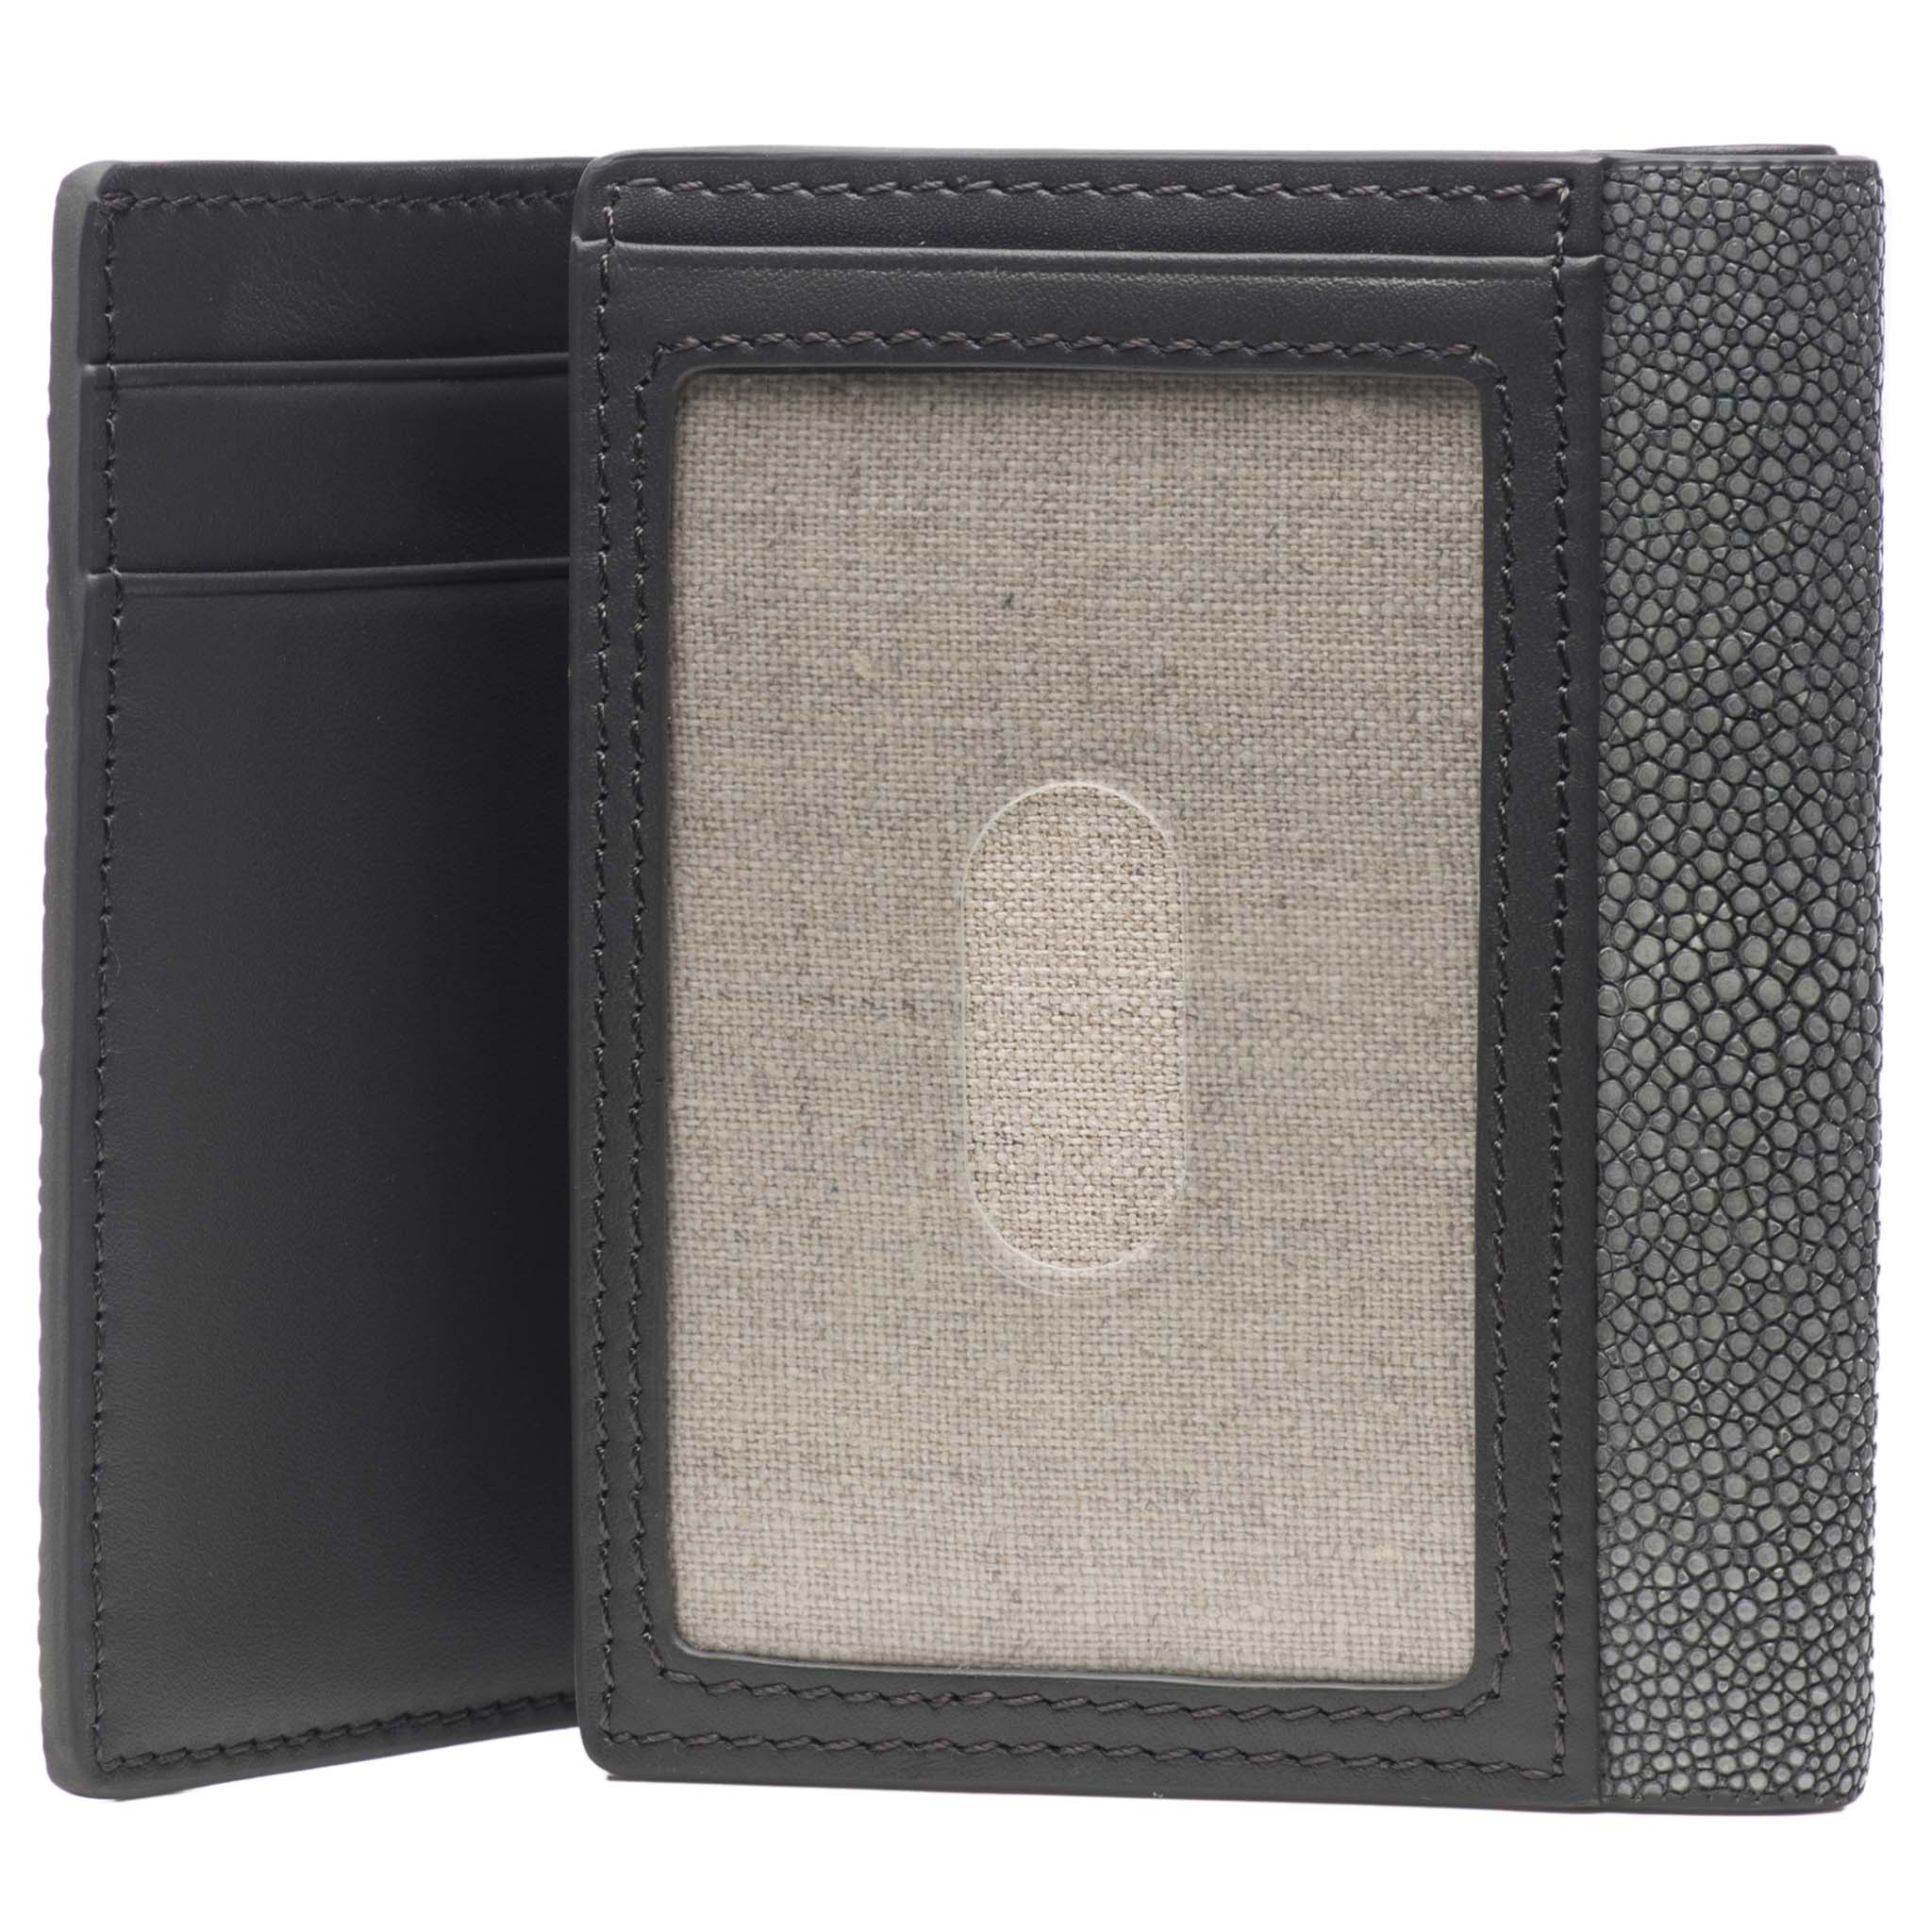 Gray Shagreen Tri-Fold Wallet Leather Interior Inside ID  View Evan - Vivo Studios